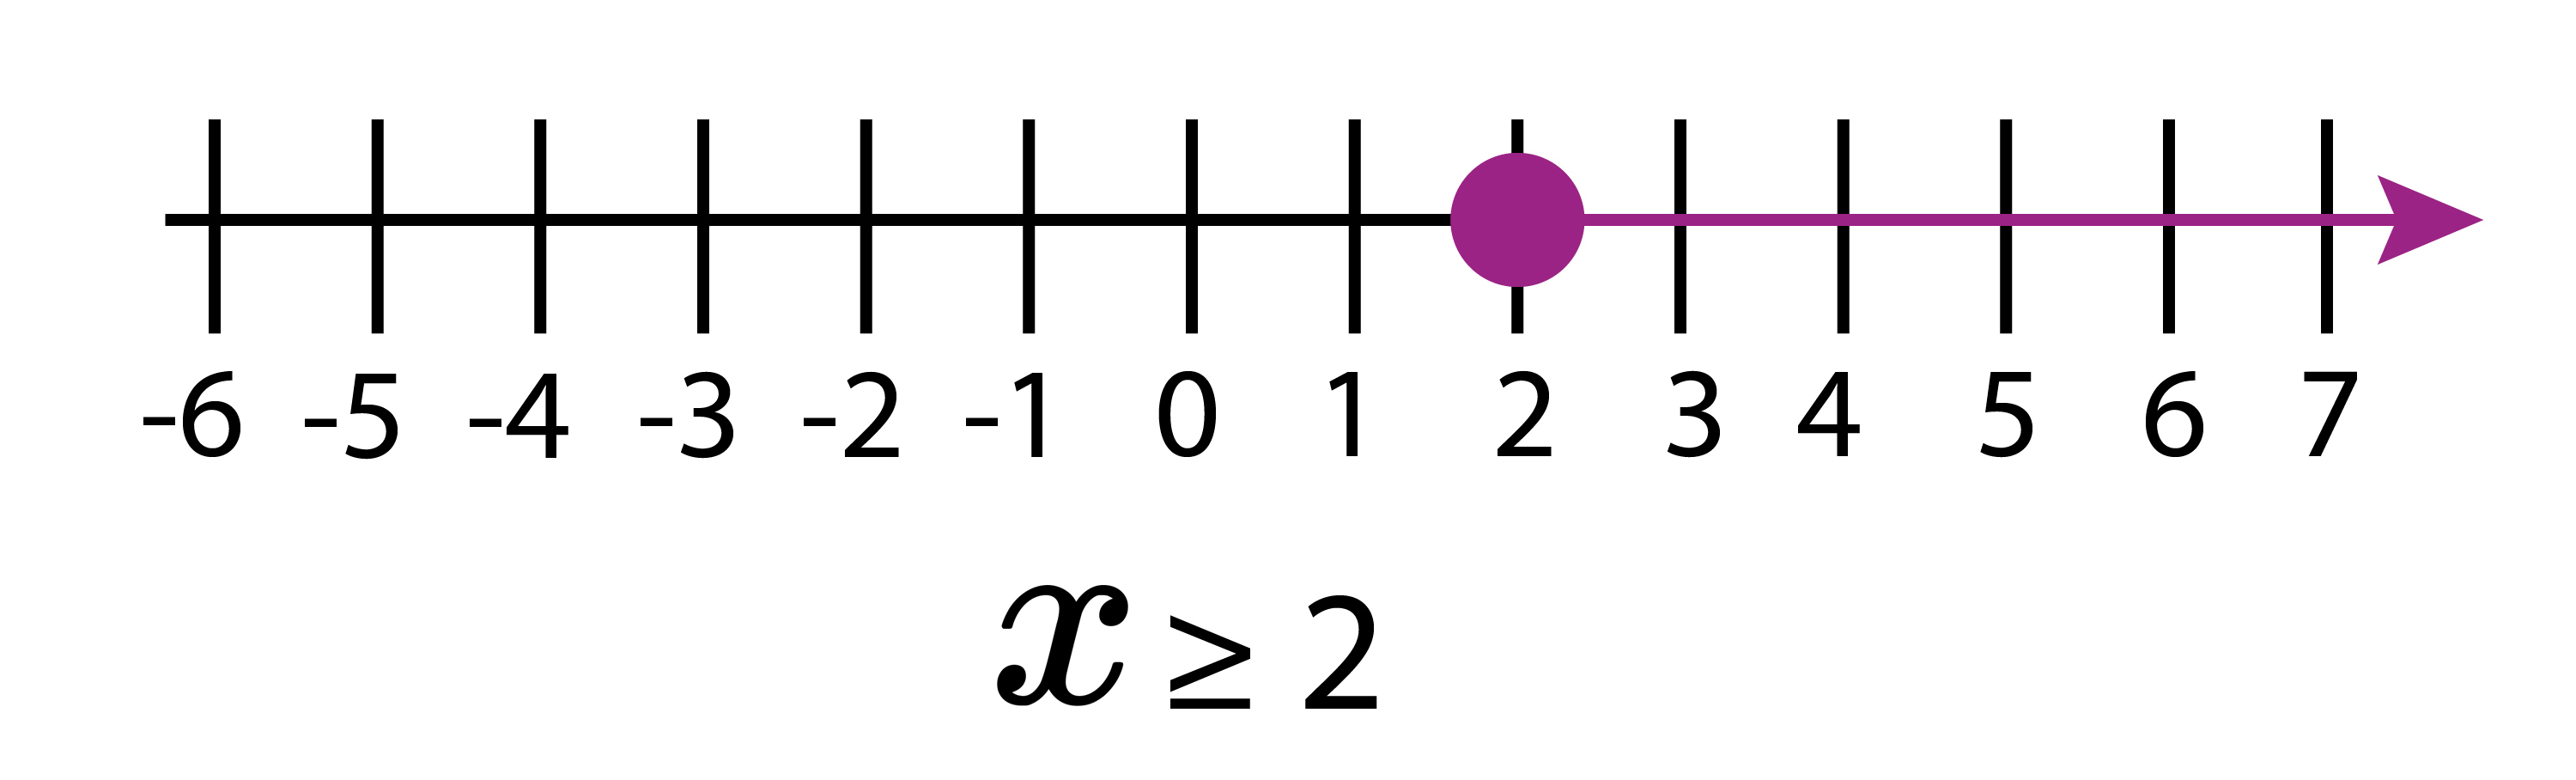 On the number line x is greater than or equal to 2